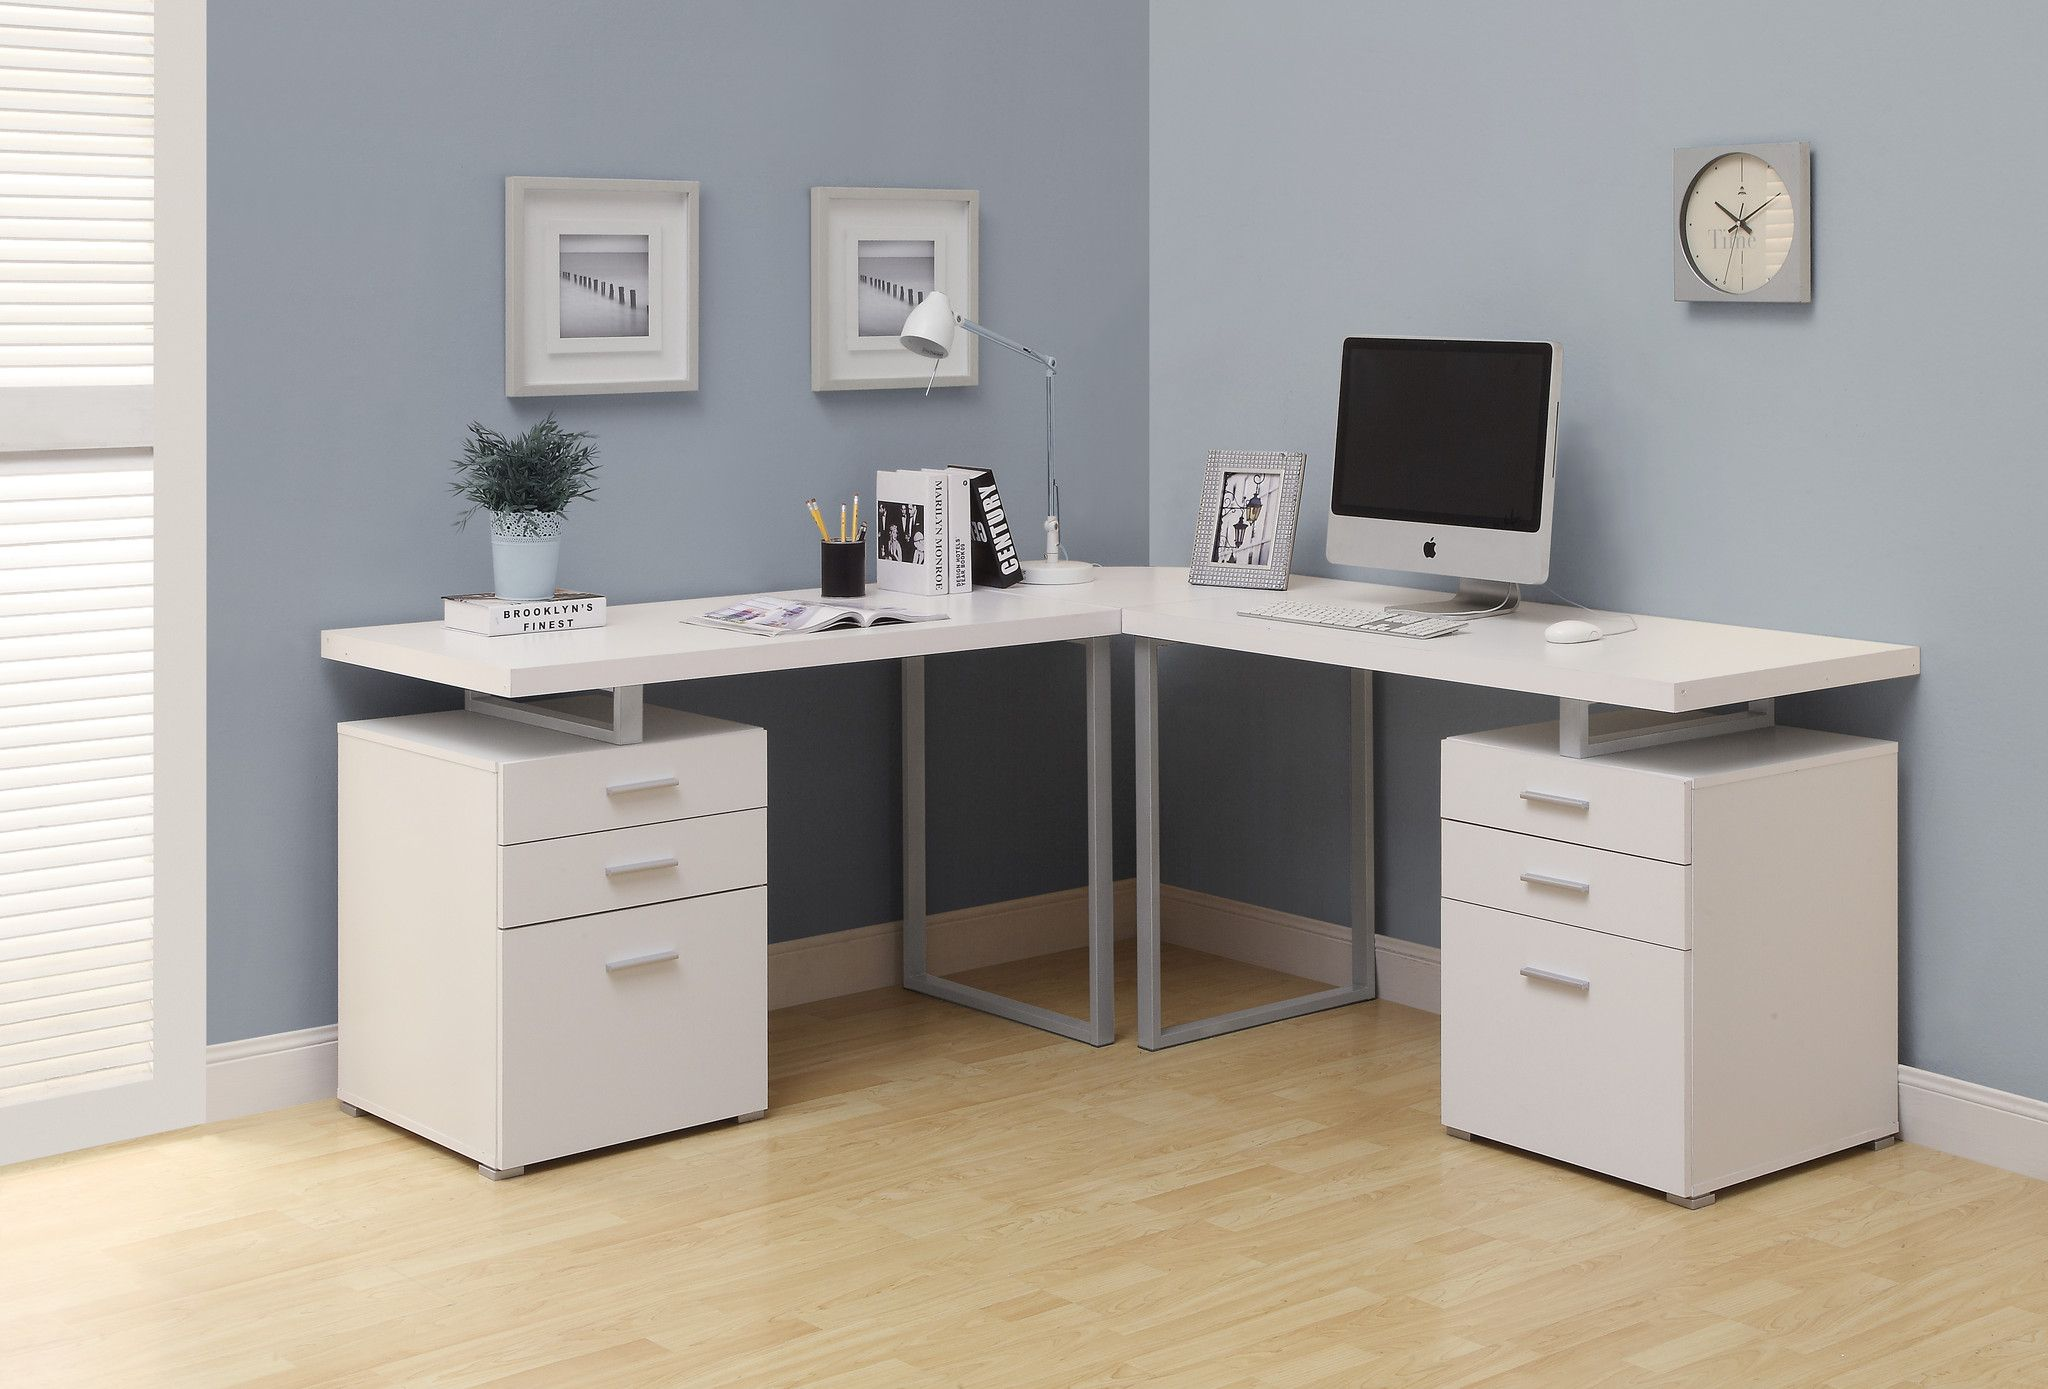 This Simple Yet Practical 3pc Desk Set Is The Perfect Addition To